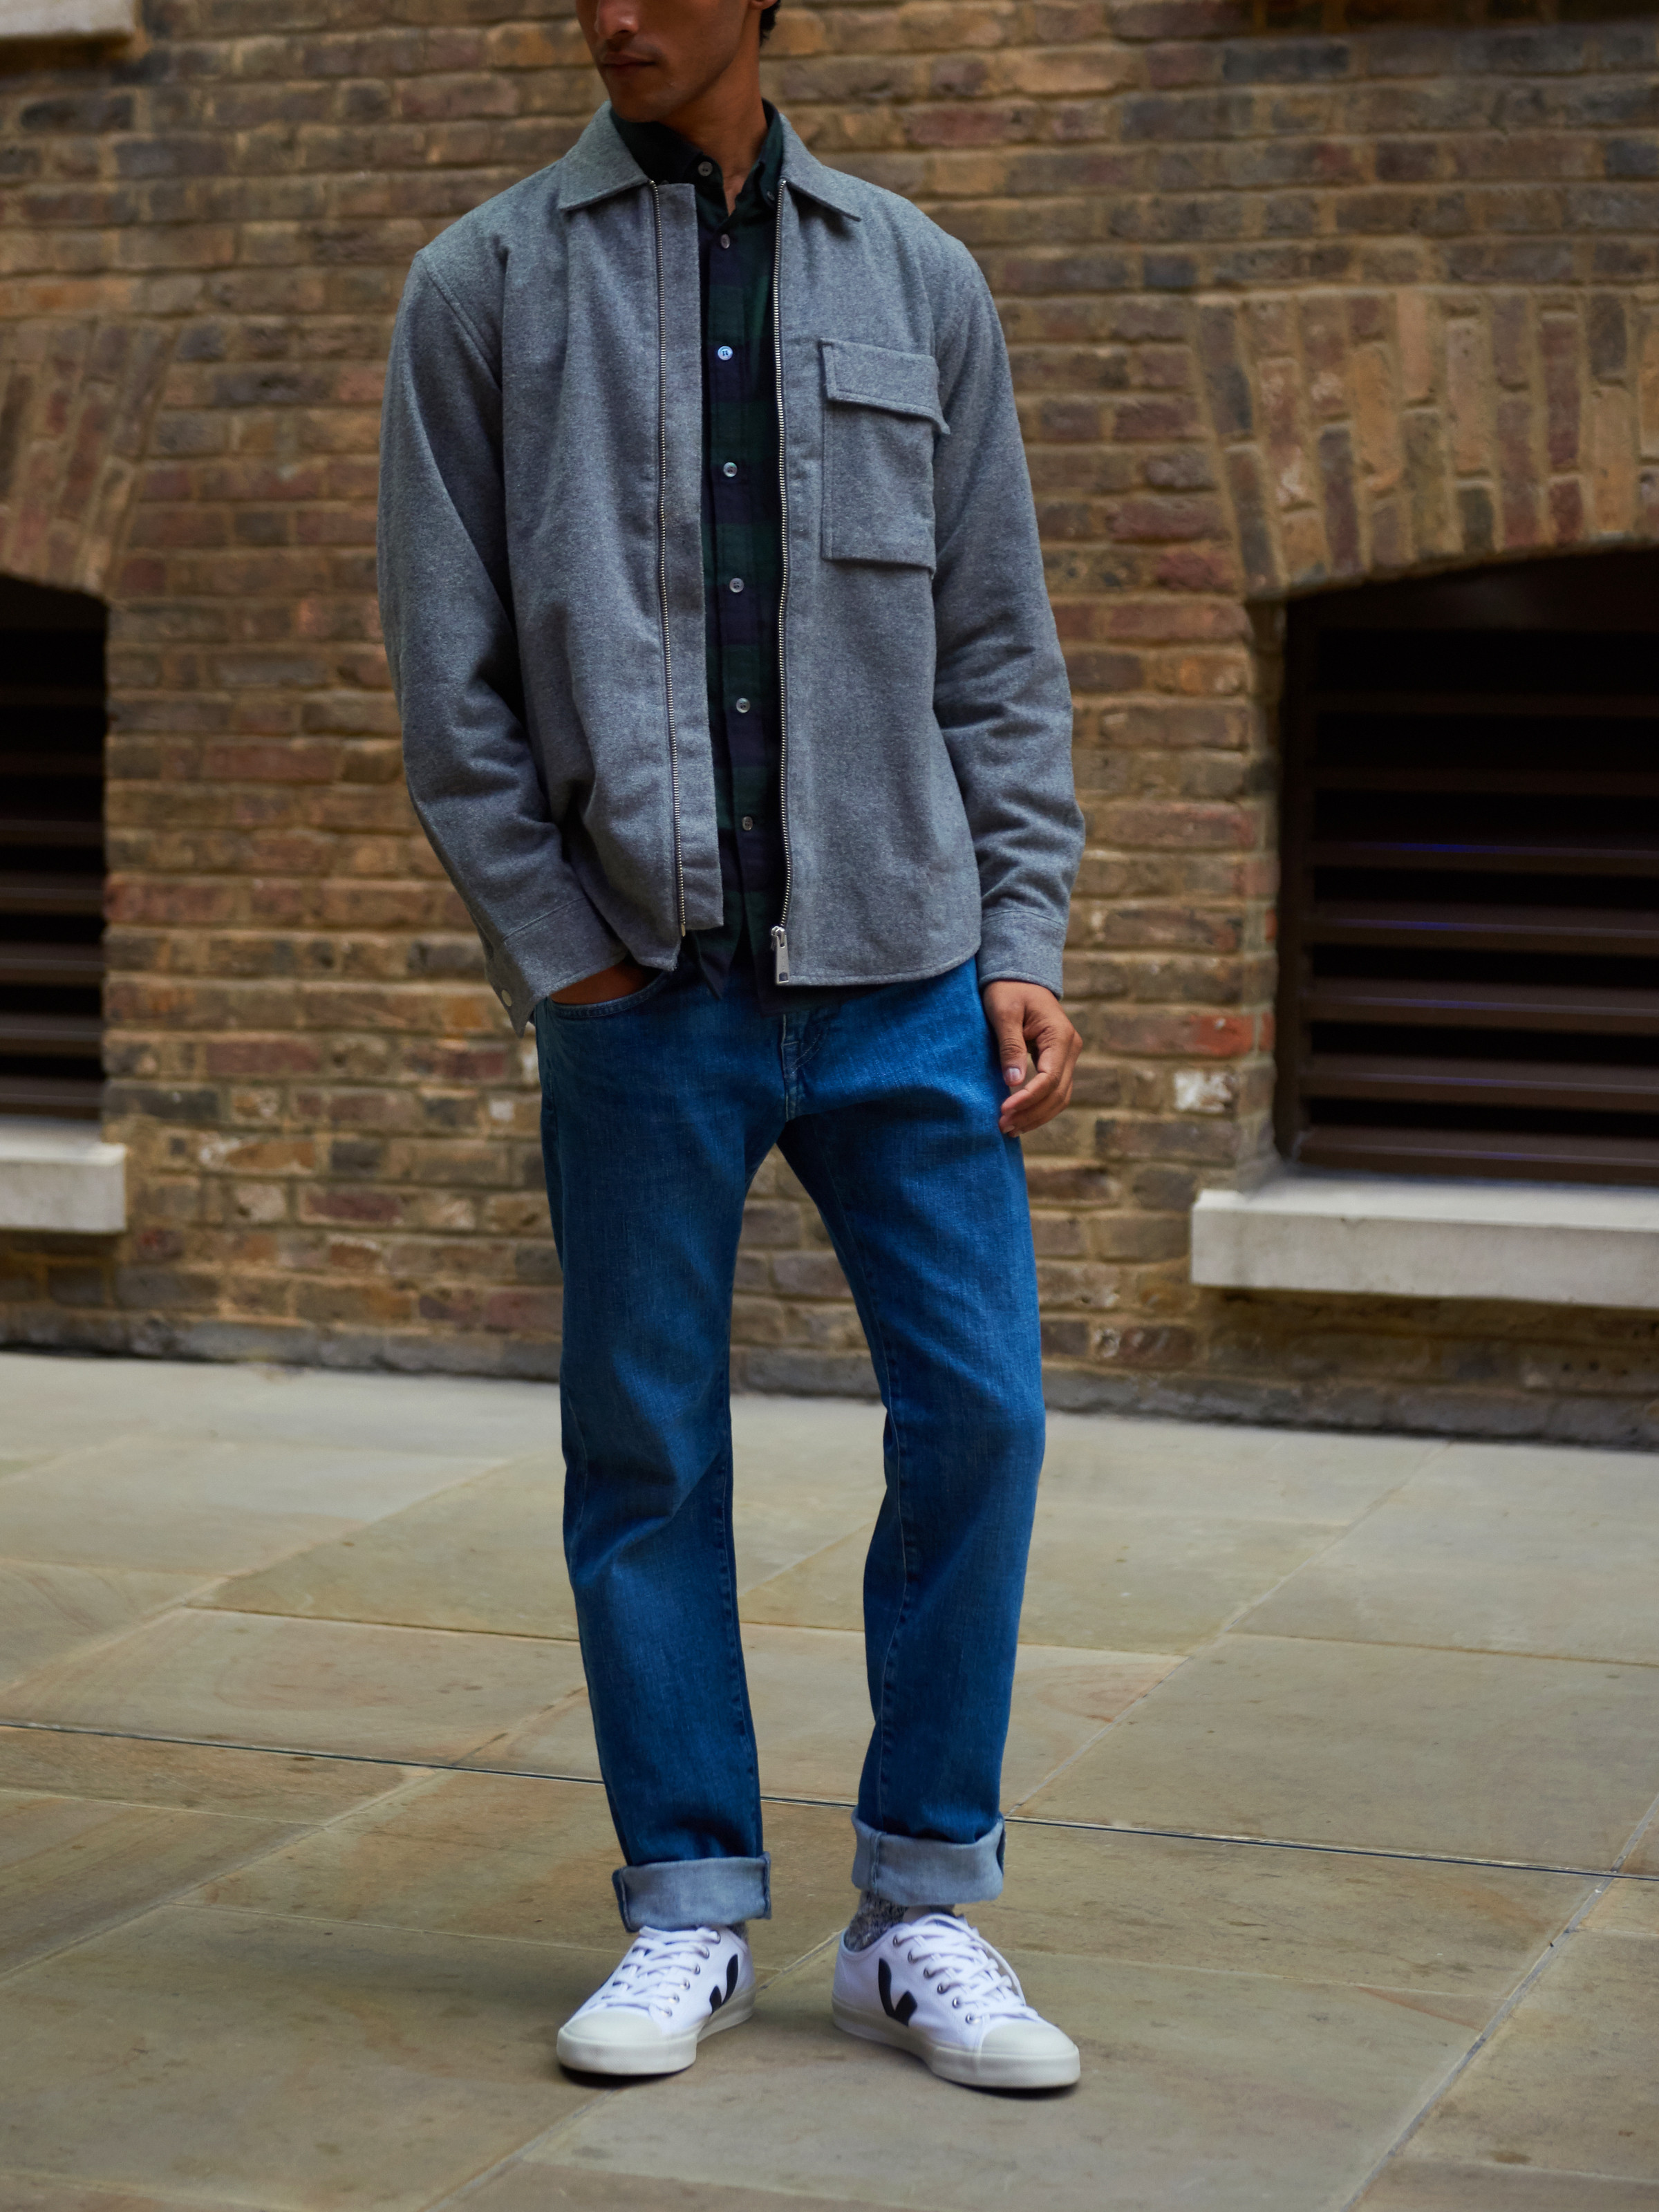 Men's outfit idea for 2021 with overshirt, bold plaid shirt, mid blue jeans, white sneakers. Suitable for spring, fall and winter.